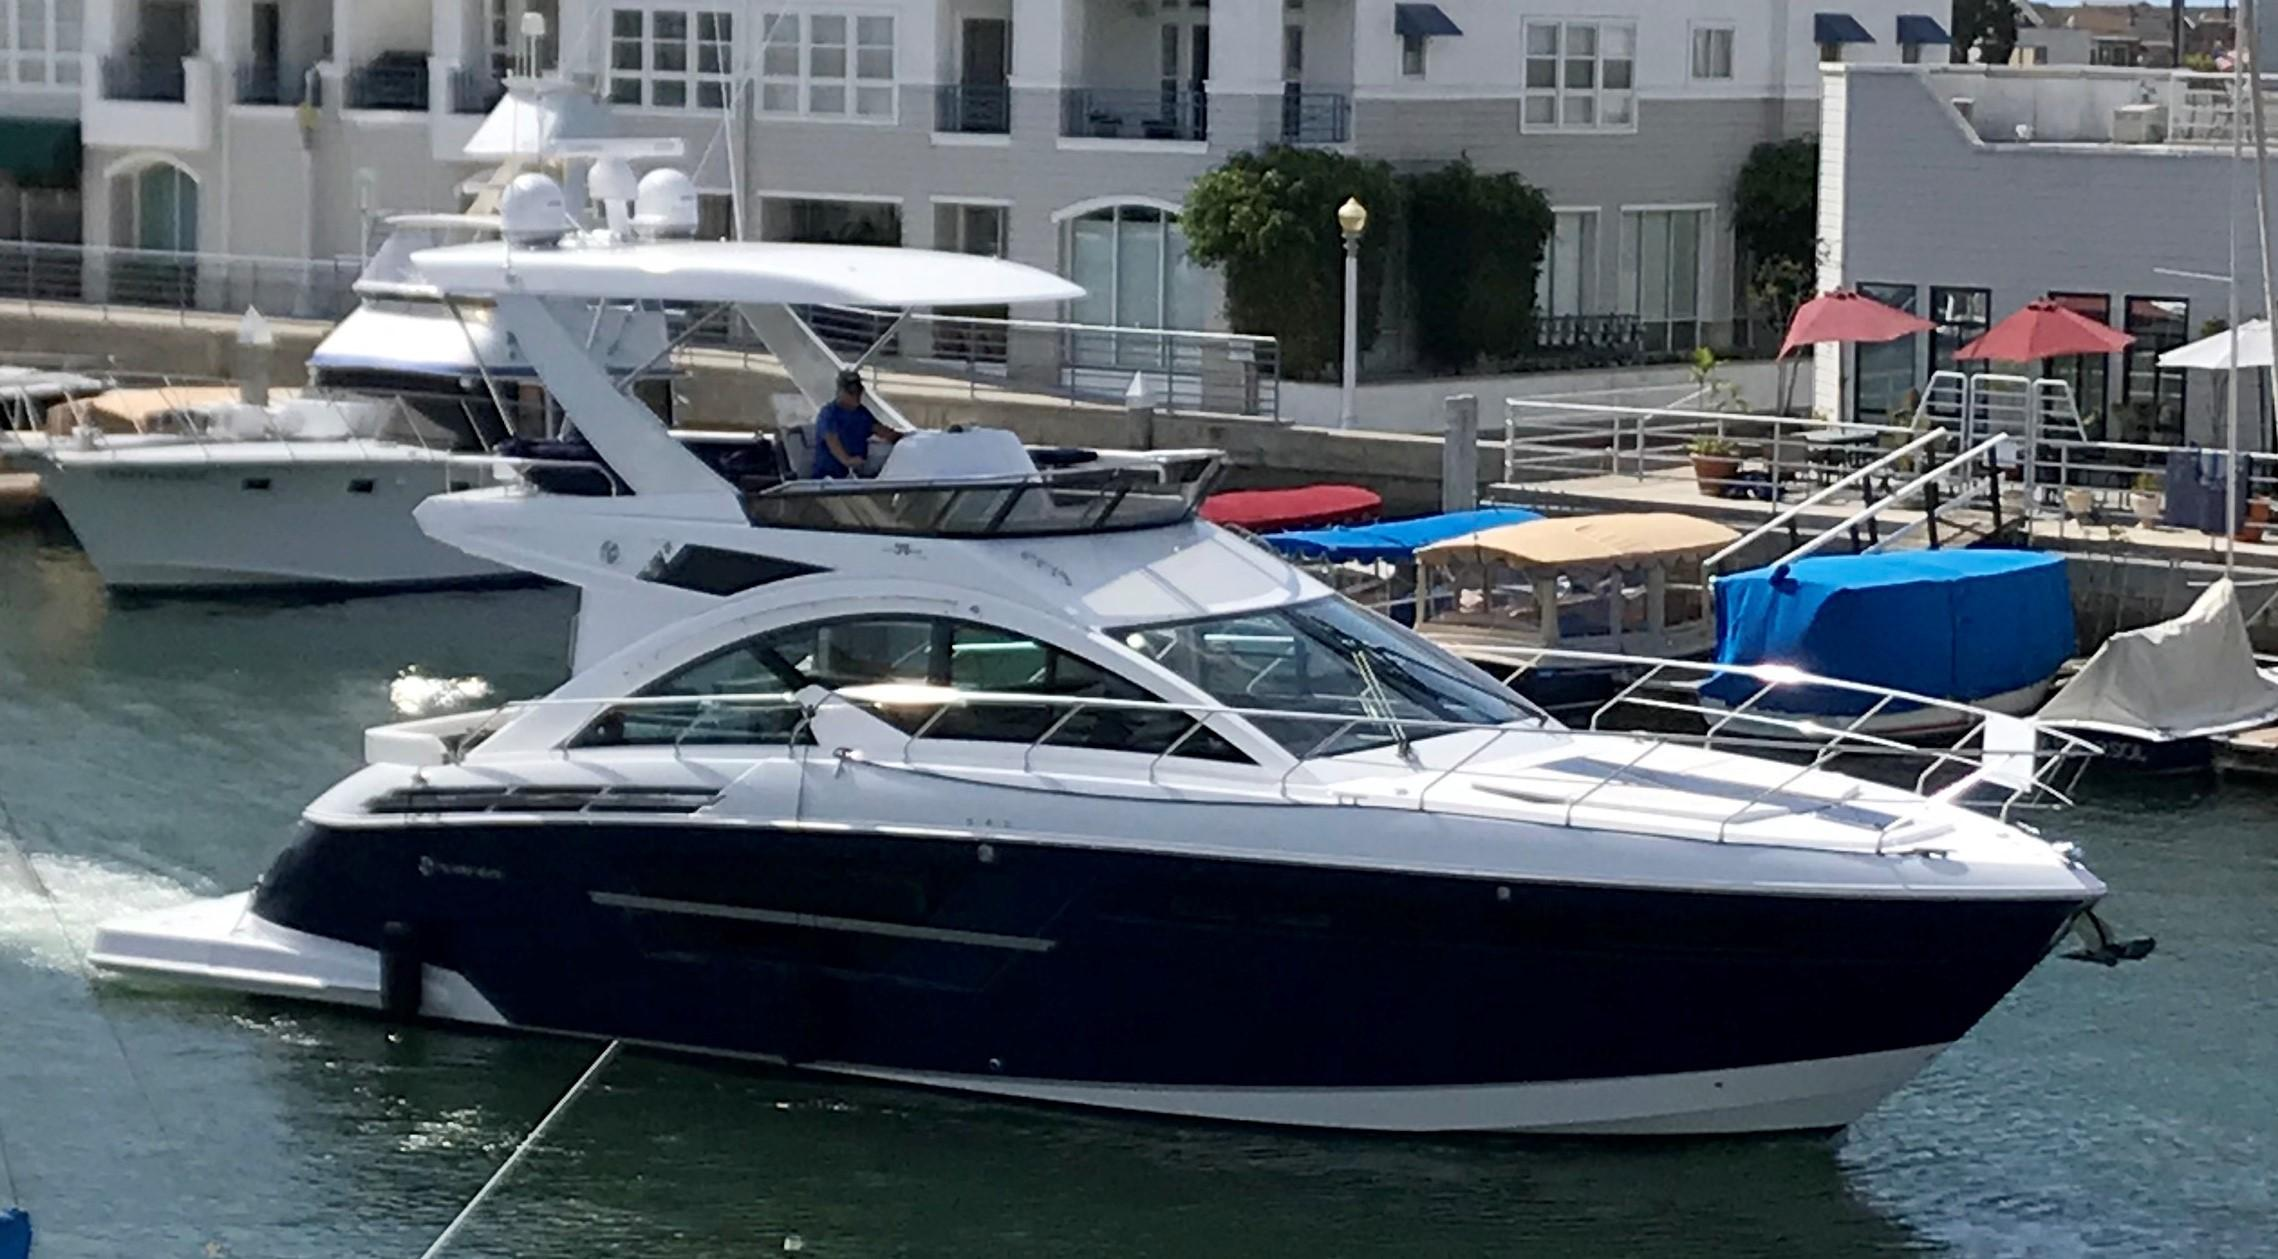 2018 Cruisers Yachts 54 Fly Power Boat For Sale Www Yachtworld Com